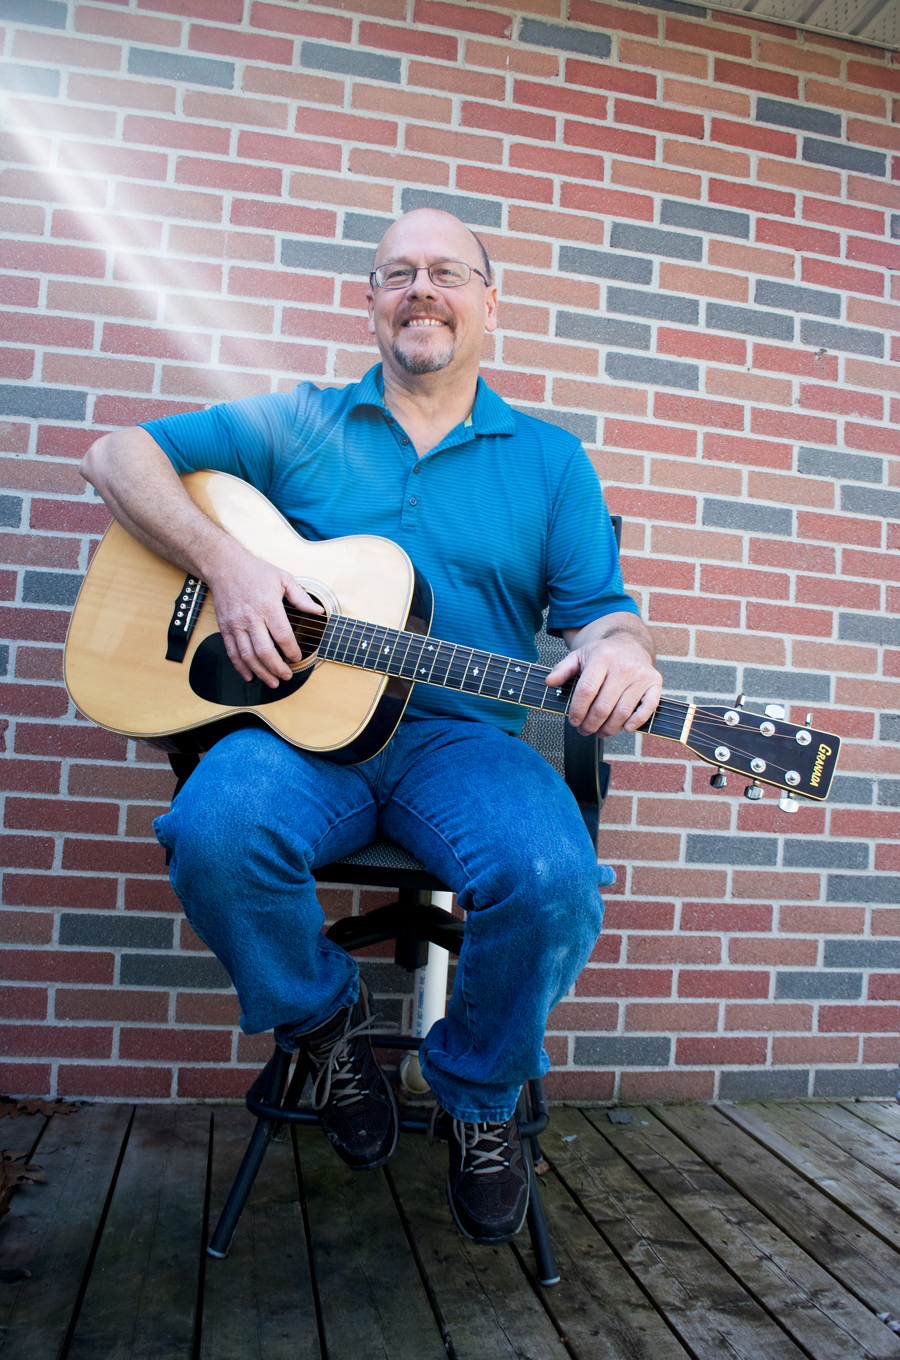 man in blue shirt and blue jeans on a stool on wood deck playing guitar, ray of sun shining on him